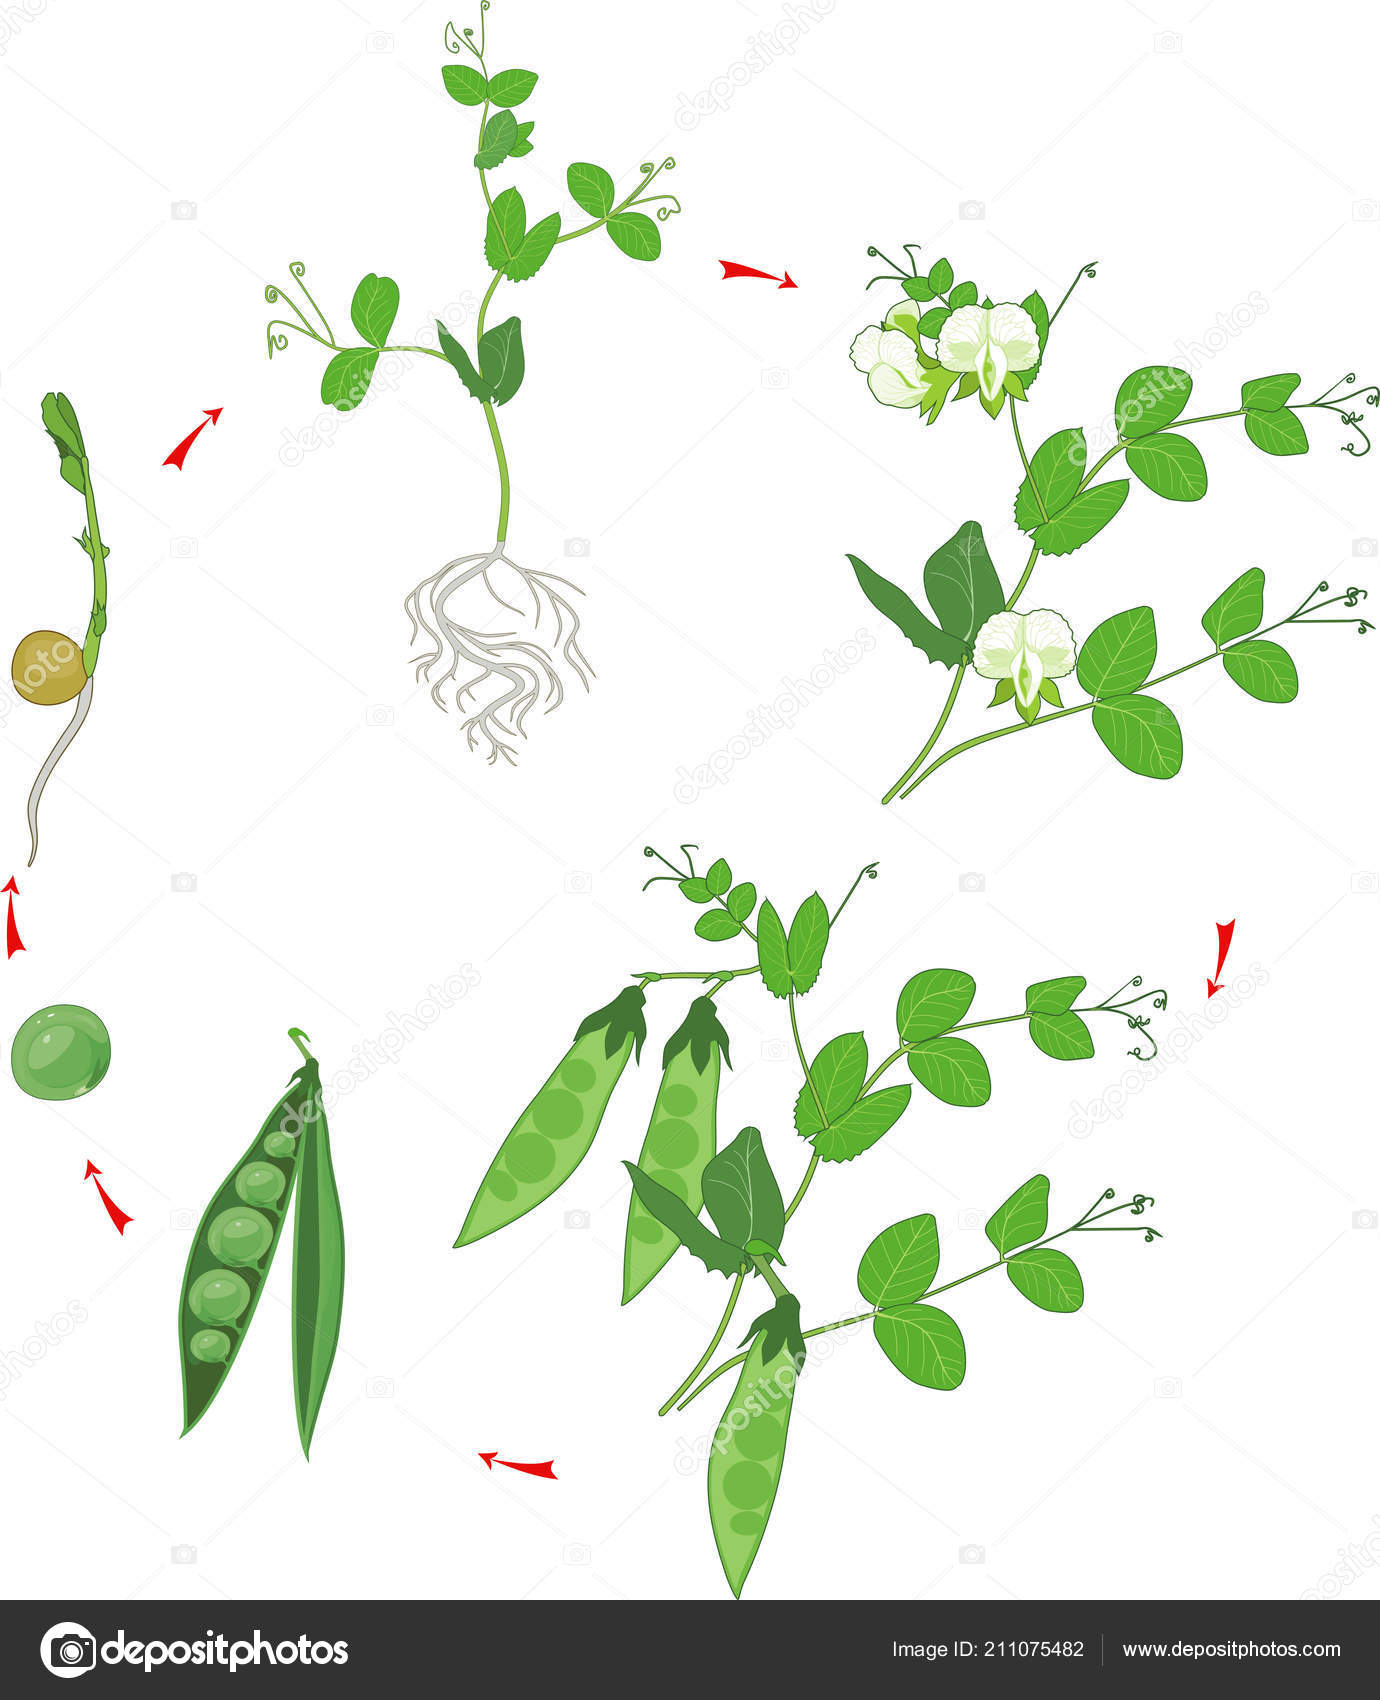 Life Cycle Pea Plant Stages Pea Growth Seed Sprout Adult